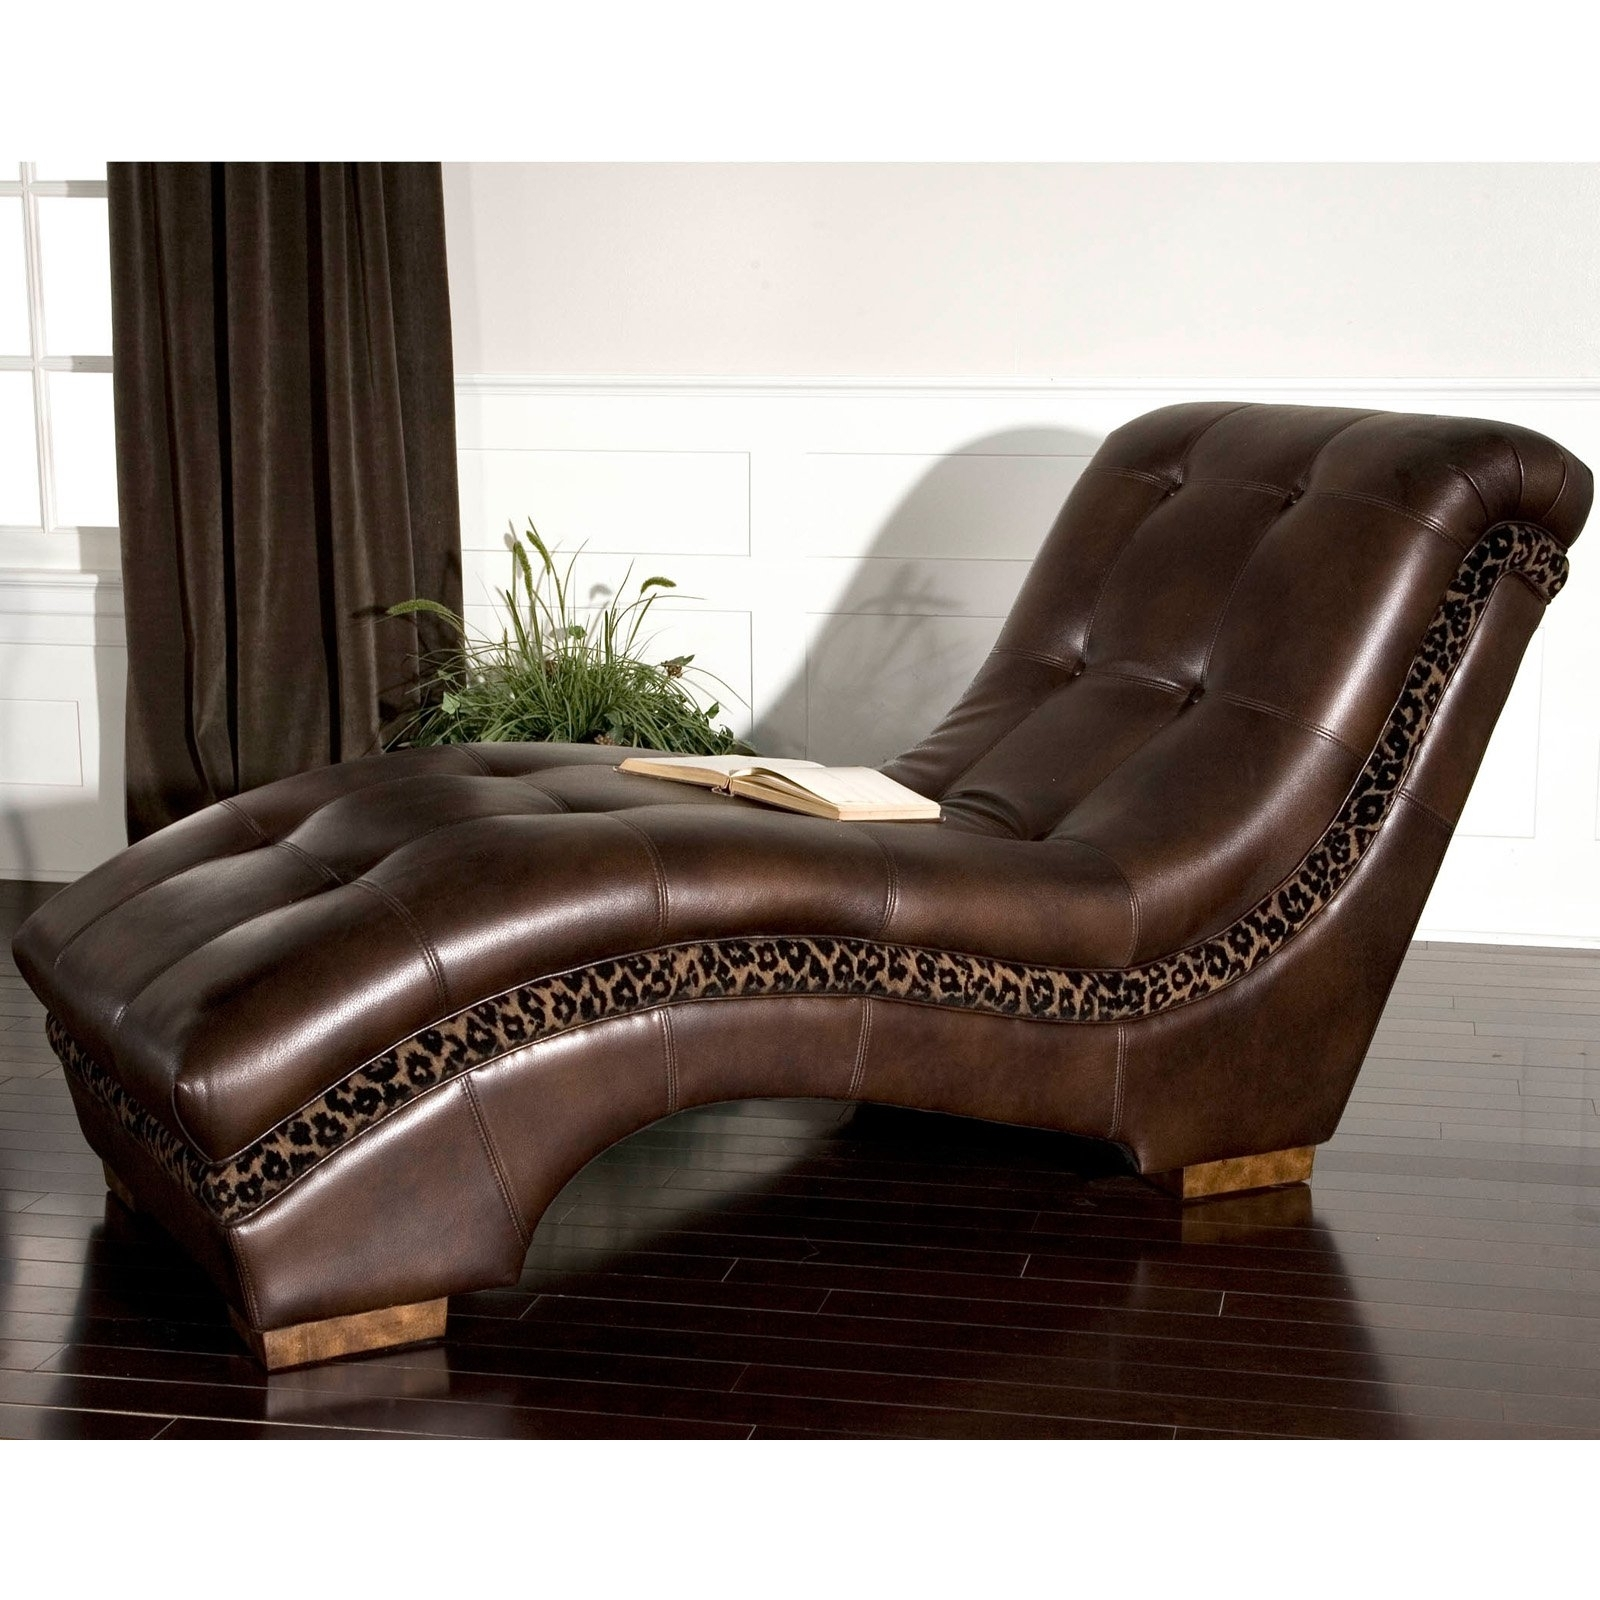 Zebra Print Chaise Lounge Chairs Inside Most Popular Brown Chaise Lounge – Brown Zebra Print Chaise Lounge, Brown (View 13 of 15)